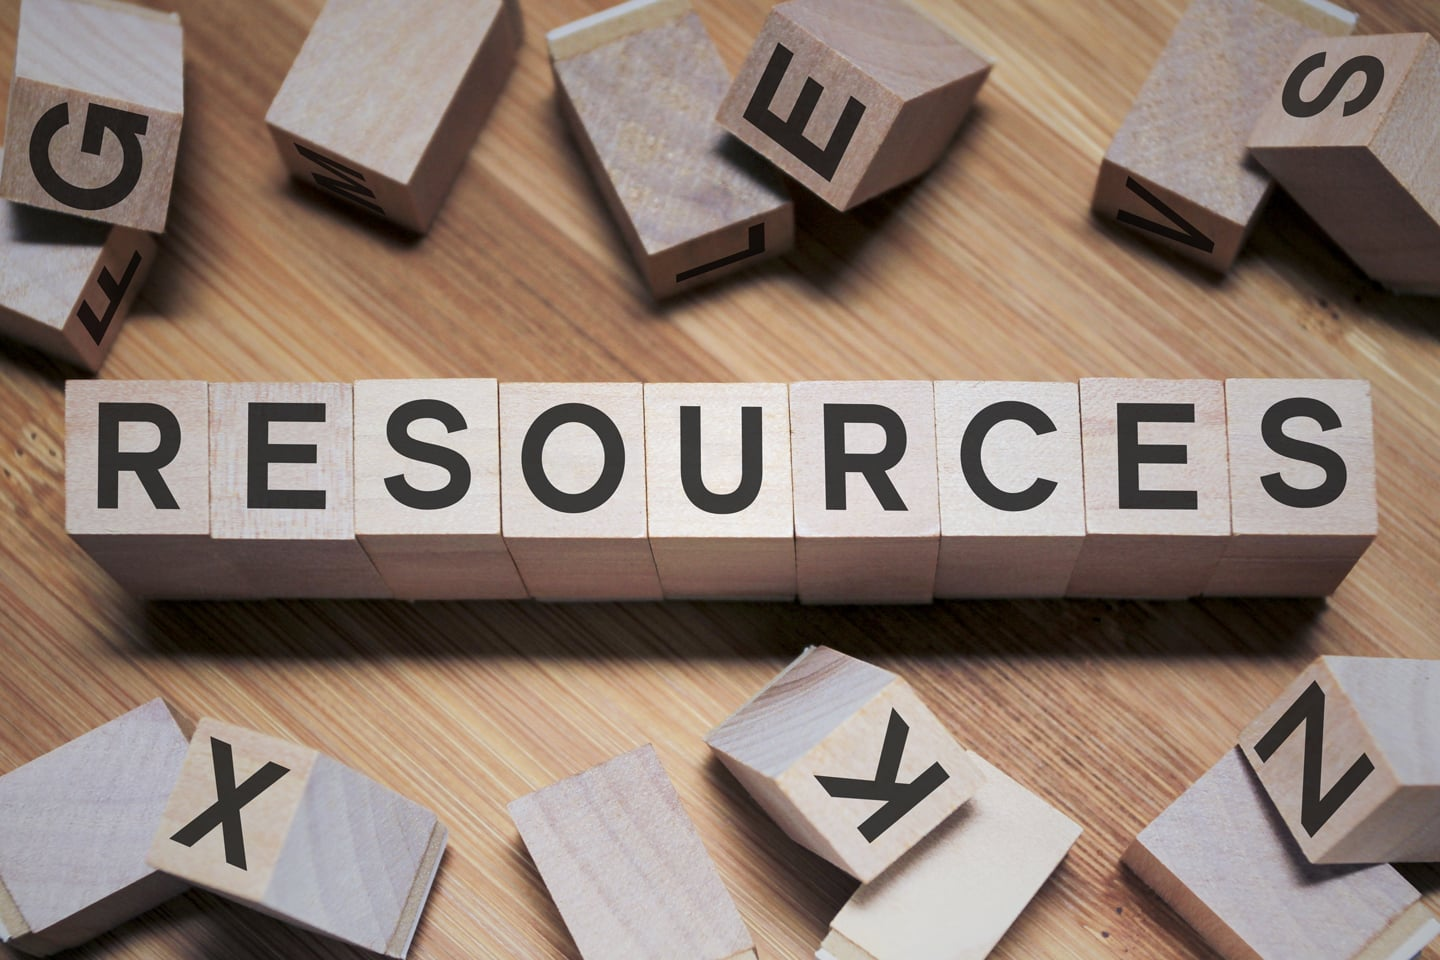 Jt S Top 5 Teaching Resources For Supply Teachers And Teaching Assistants Justteachers